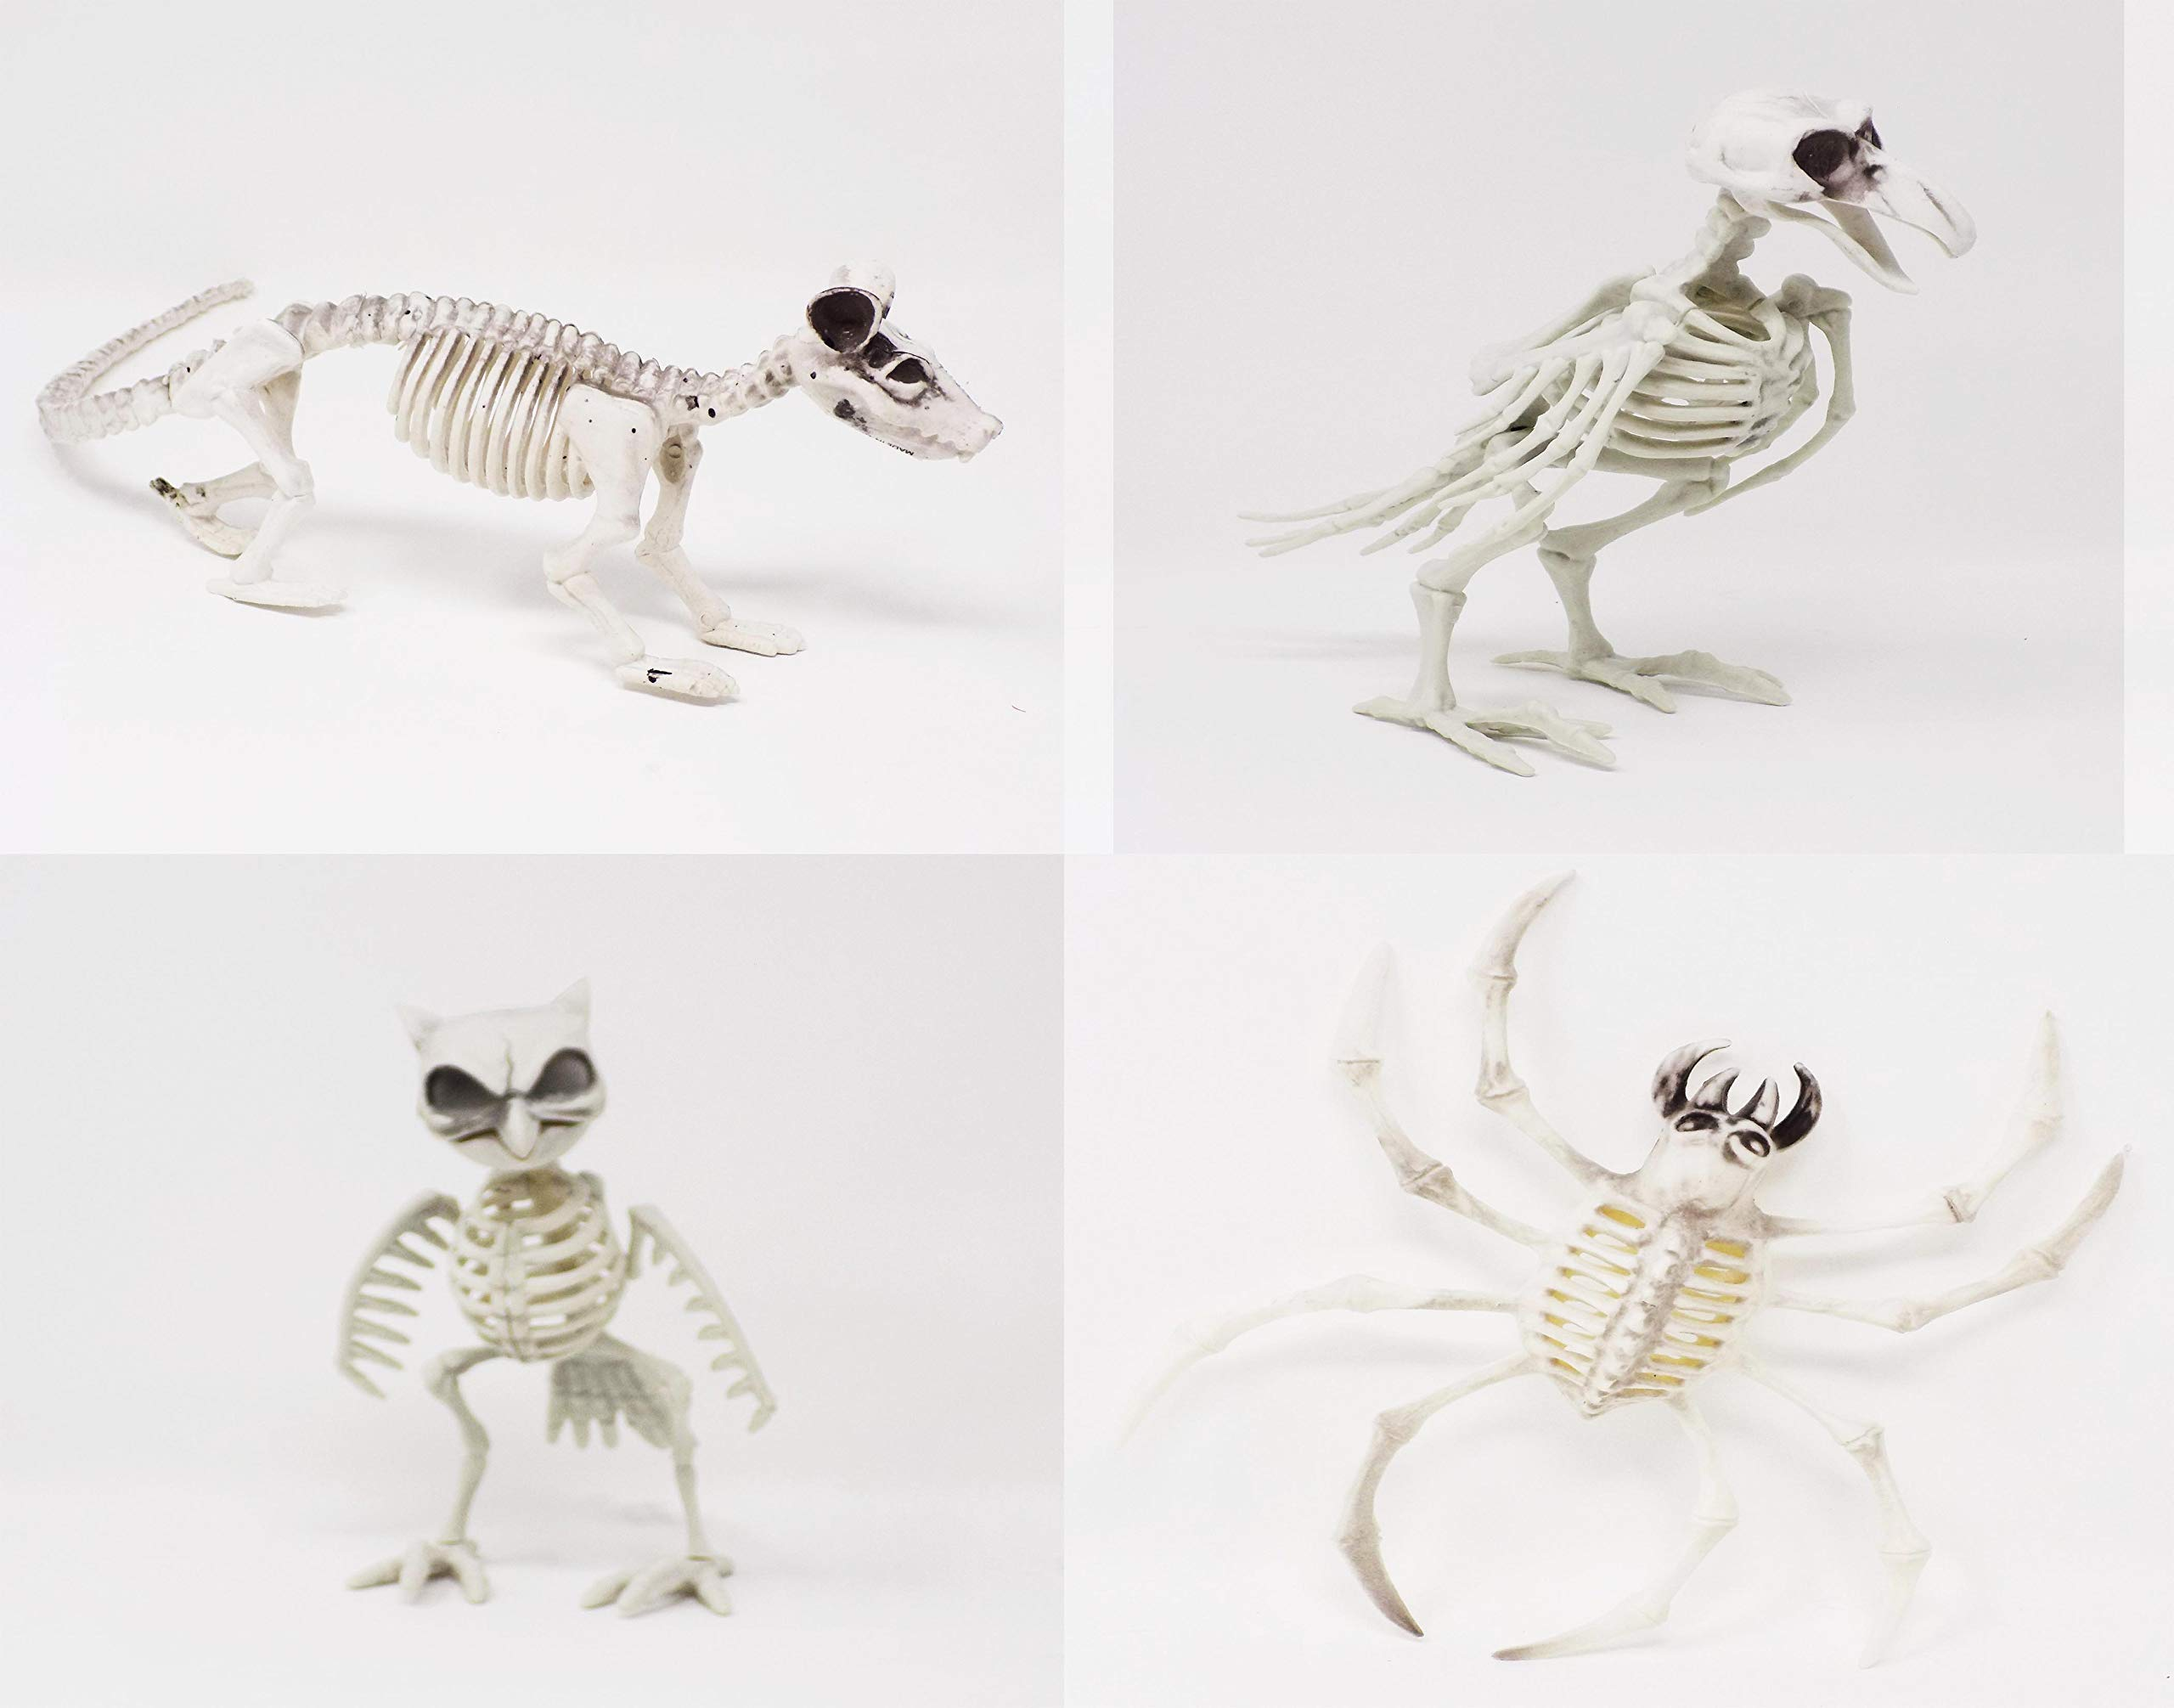 J&J's ToyScape Halloween Bone Skeleton Animals - 4 Pack - Crow, Owl, Rat & Spider | Halloween Party Yard Decorations, Scary Table Centerpieces